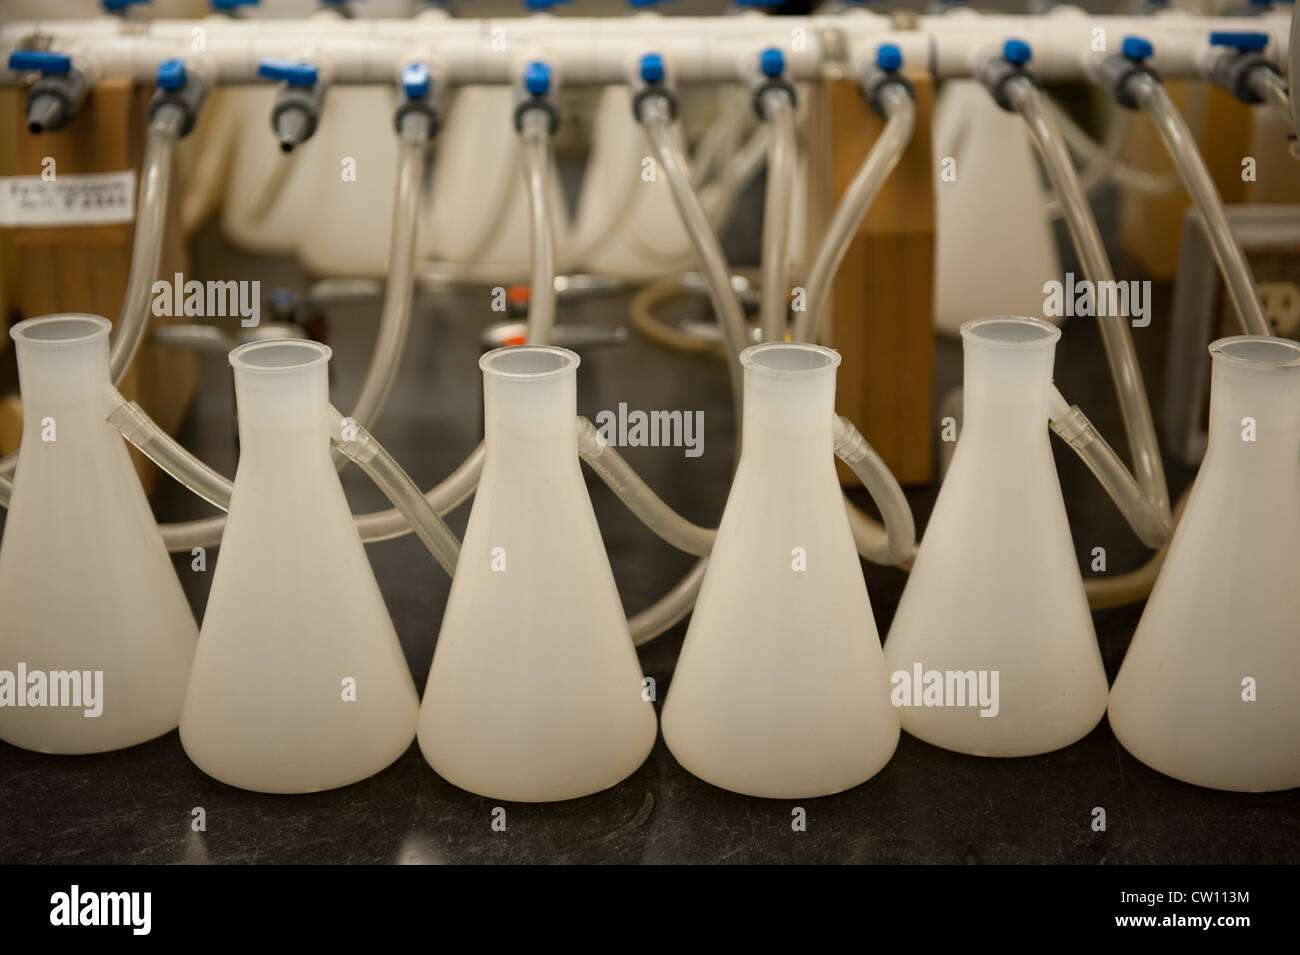 Beakers hooked up to tubes in a laboratory - Stock Image